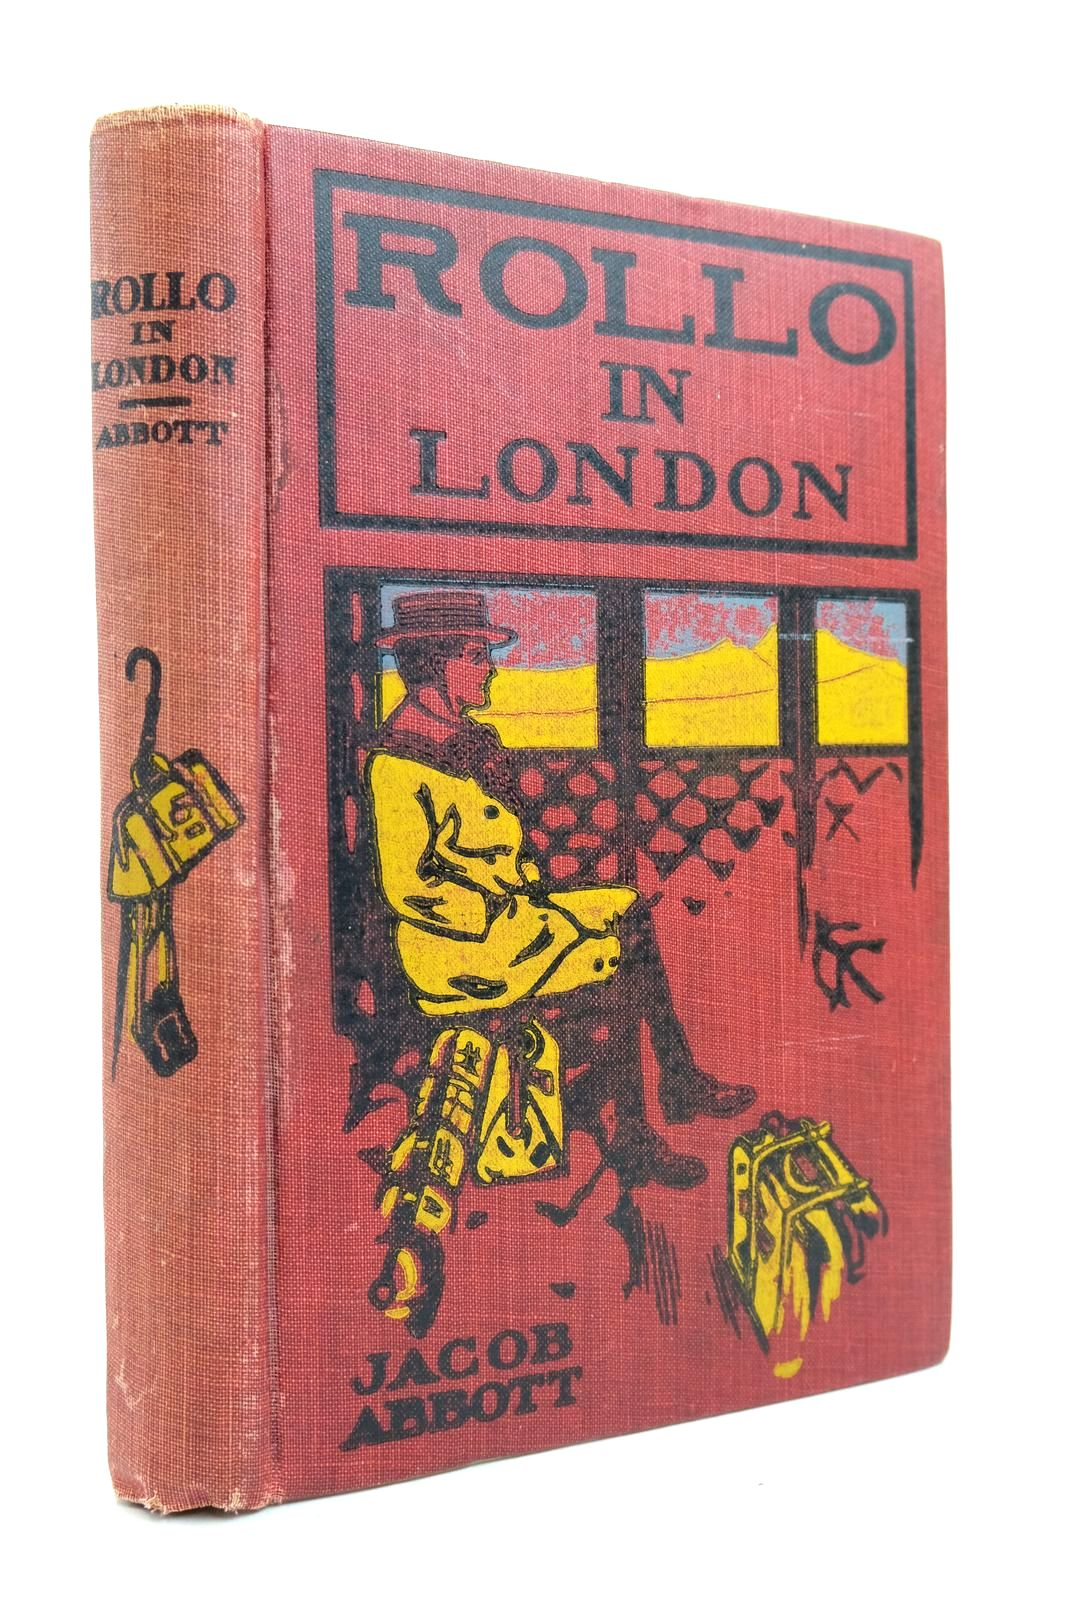 Photo of ROLLO IN LONDON- Stock Number: 2134795